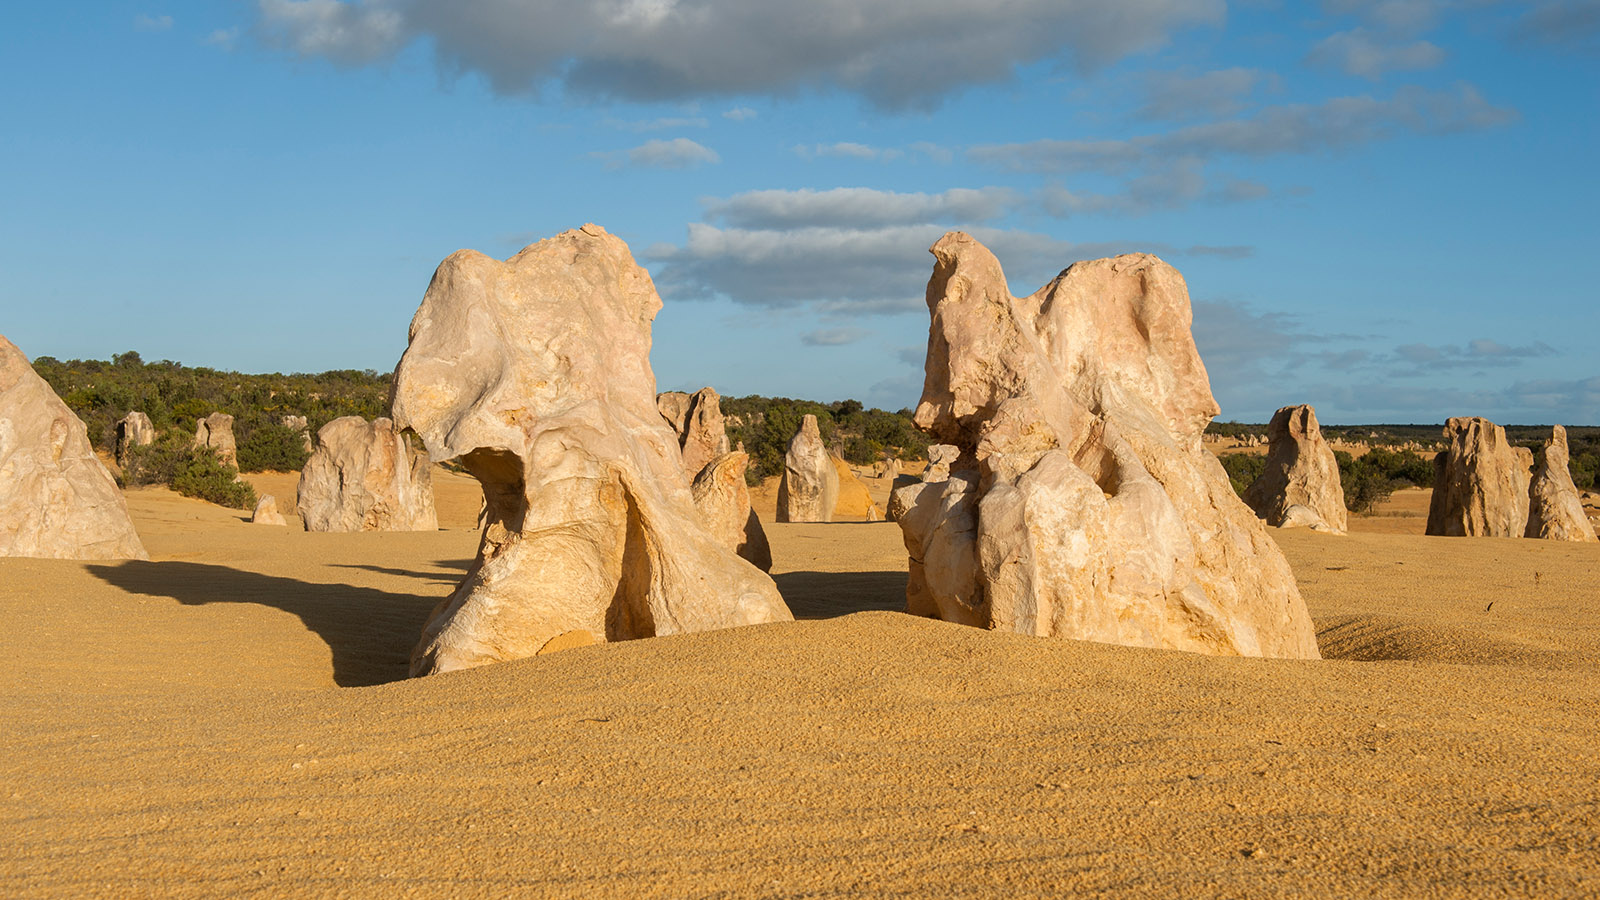 Nachmittags am schönsten: die Pinnacles im Nambung National Park. Foto: Hilke Maunder